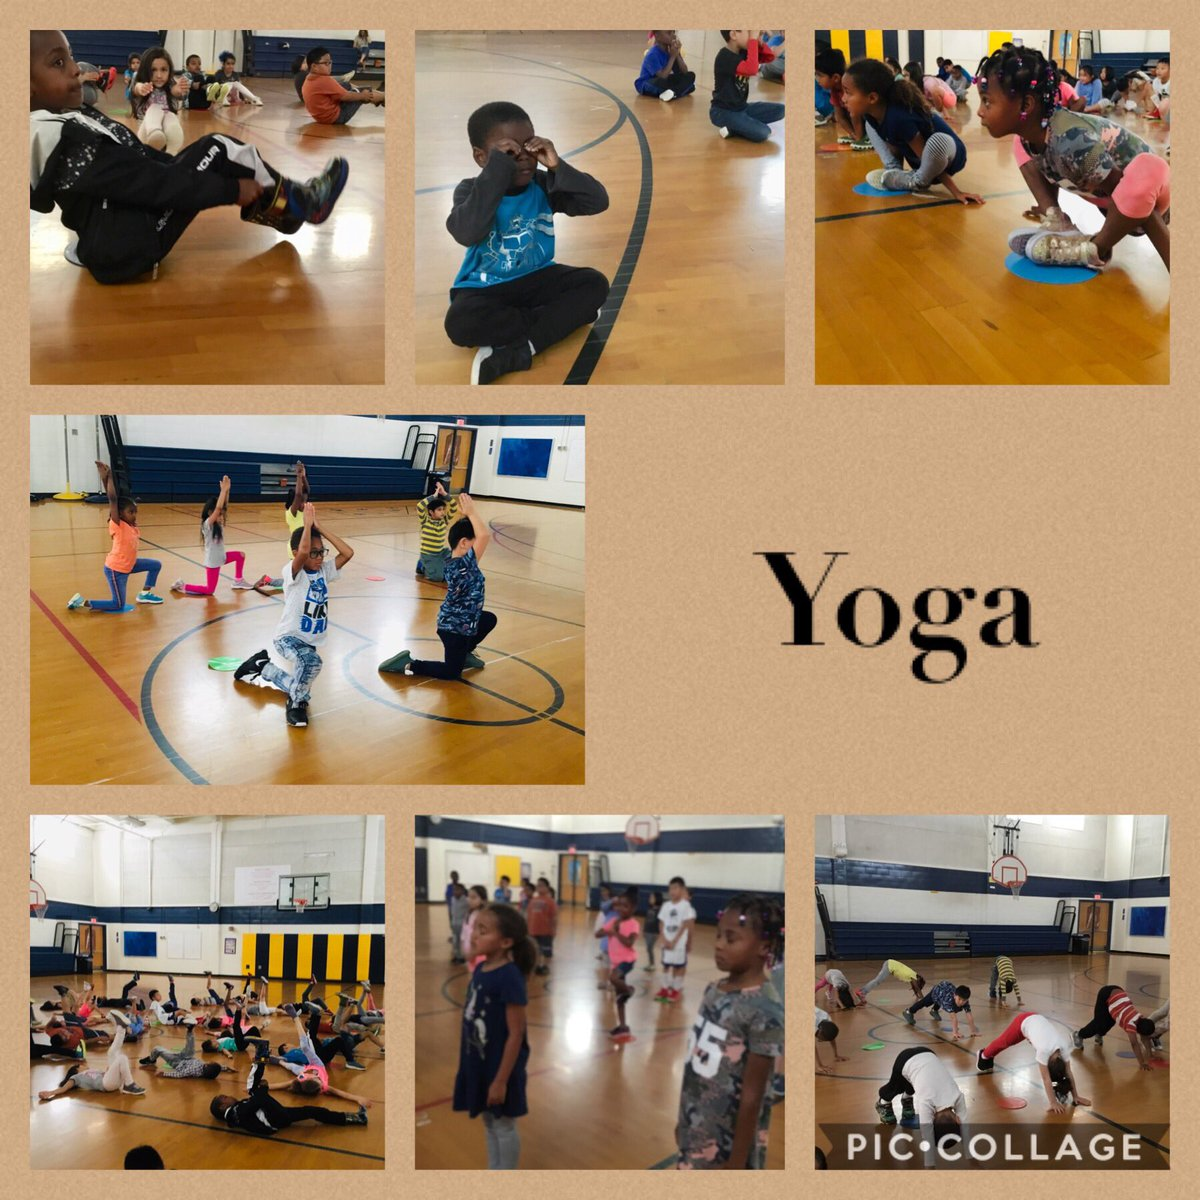 First grade/Kinder practicing yoga. <a target='_blank' href='http://search.twitter.com/search?q=HFBTweets'><a target='_blank' href='https://twitter.com/hashtag/HFBTweets?src=hash'>#HFBTweets</a></a>  <a target='_blank' href='http://search.twitter.com/search?q=APSisAwesome'><a target='_blank' href='https://twitter.com/hashtag/APSisAwesome?src=hash'>#APSisAwesome</a></a>  <a target='_blank' href='http://search.twitter.com/search?q=HFBFirstGrade'><a target='_blank' href='https://twitter.com/hashtag/HFBFirstGrade?src=hash'>#HFBFirstGrade</a></a>  <a target='_blank' href='http://search.twitter.com/search?q=kindergartenHFB'><a target='_blank' href='https://twitter.com/hashtag/kindergartenHFB?src=hash'>#kindergartenHFB</a></a> <a target='_blank' href='https://t.co/QjdRknpVNM'>https://t.co/QjdRknpVNM</a>